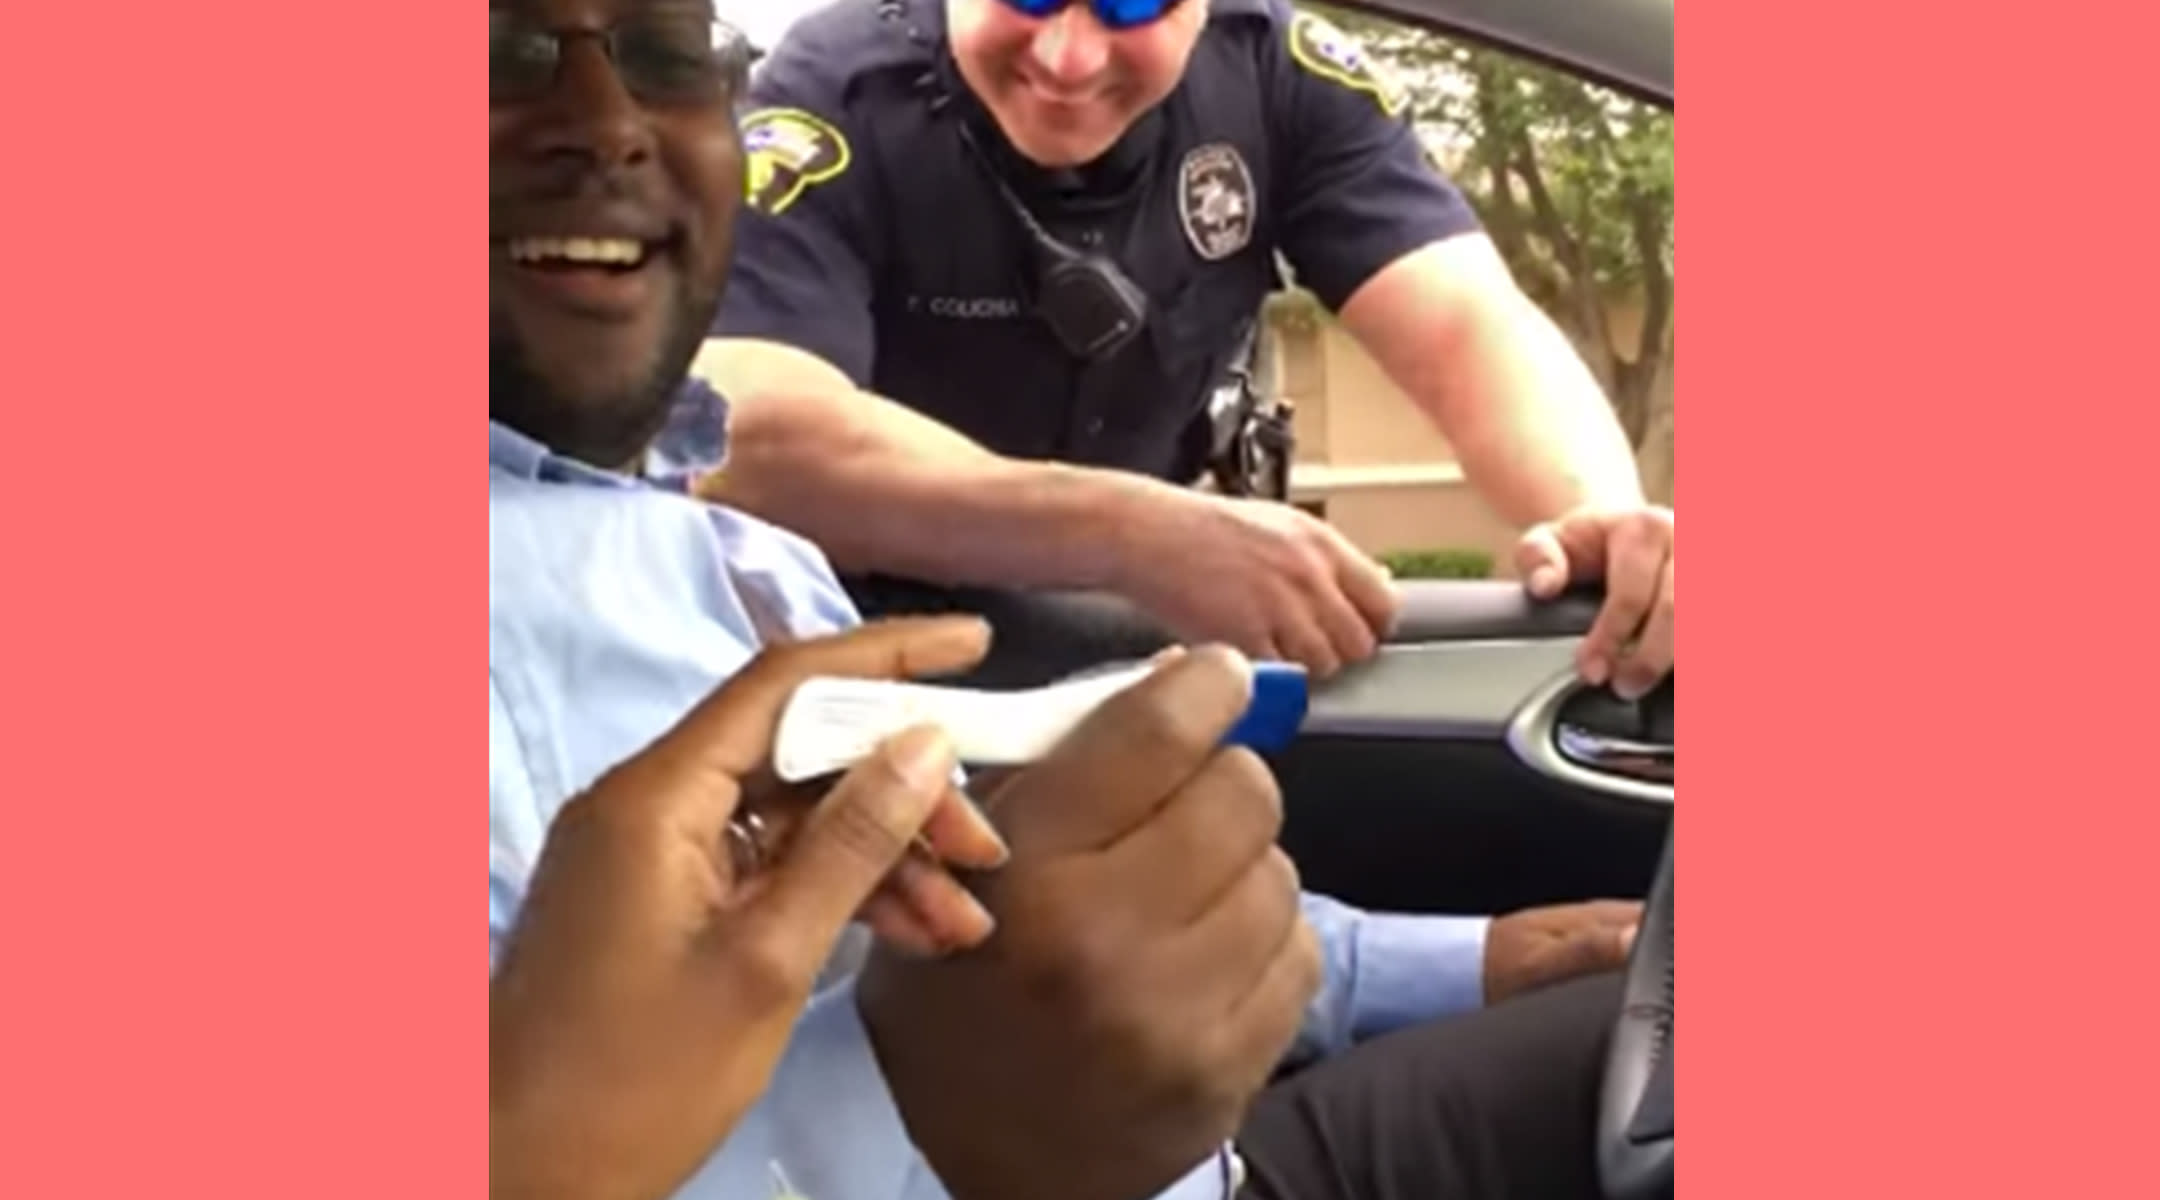 Man behind the wheel looking at a positive pregnancy test after being pulled over.